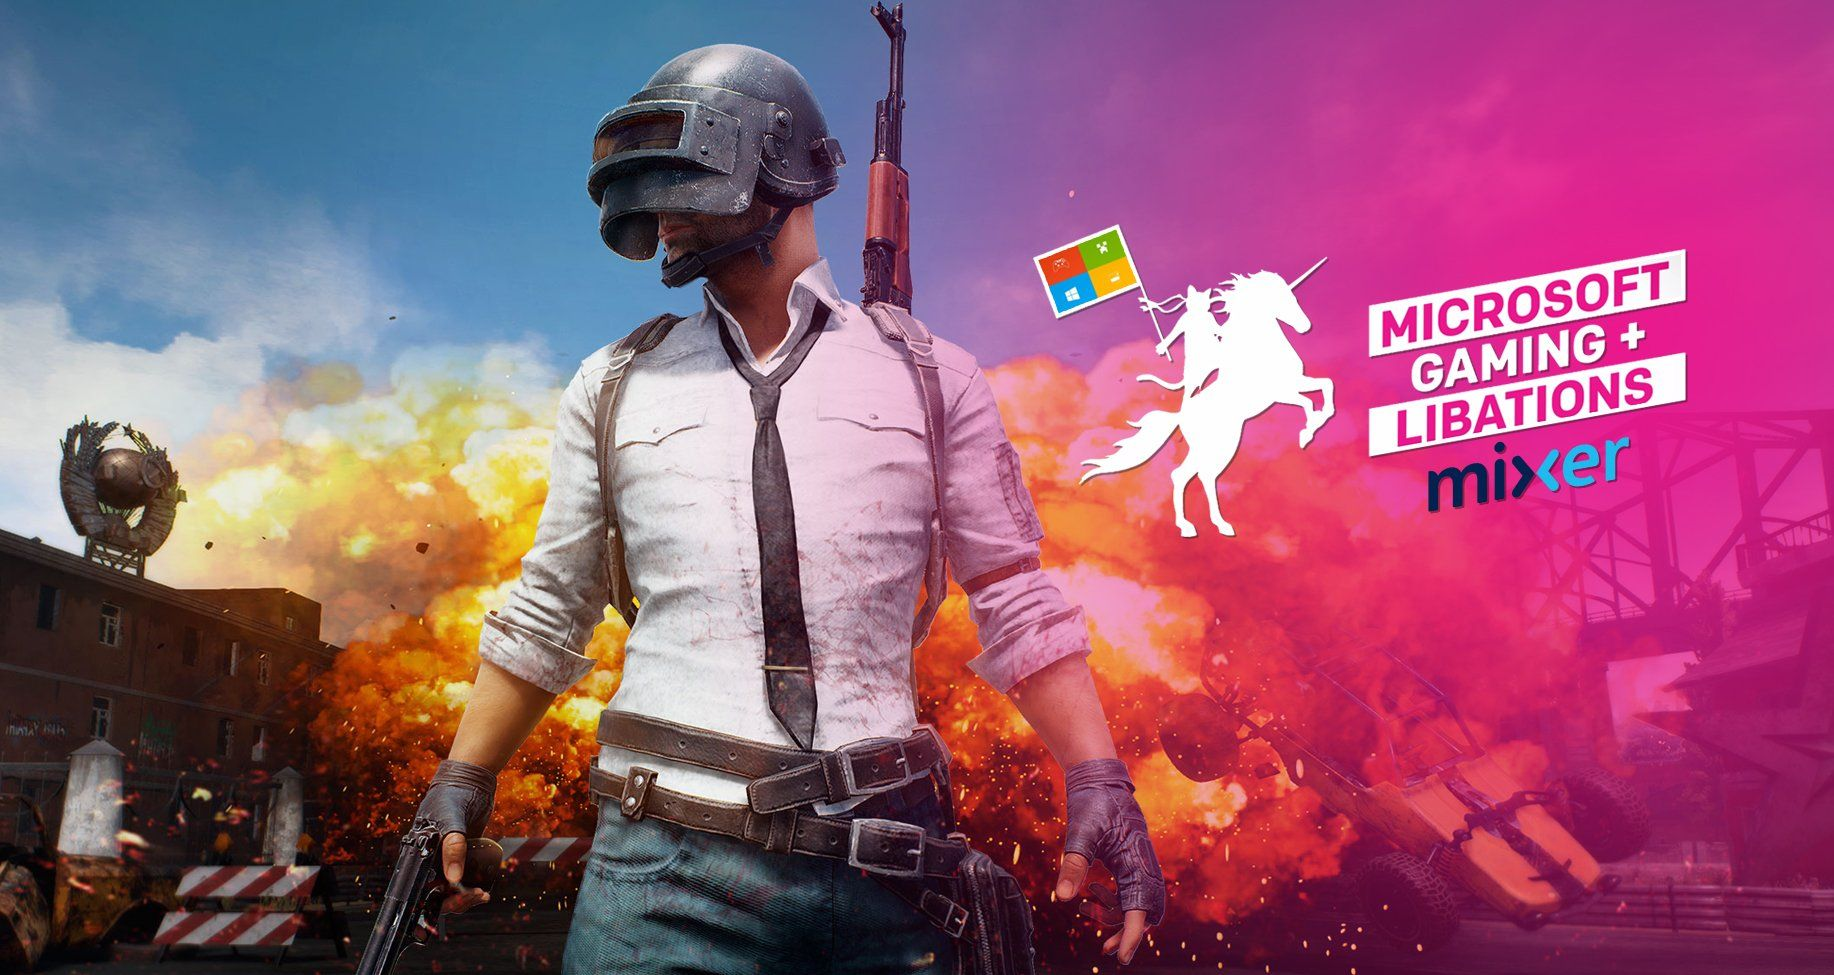 MGL 35 - Join us for PlayerUnknown's Battlegrounds and you could win a YEAR of Xbox Game Pass access!